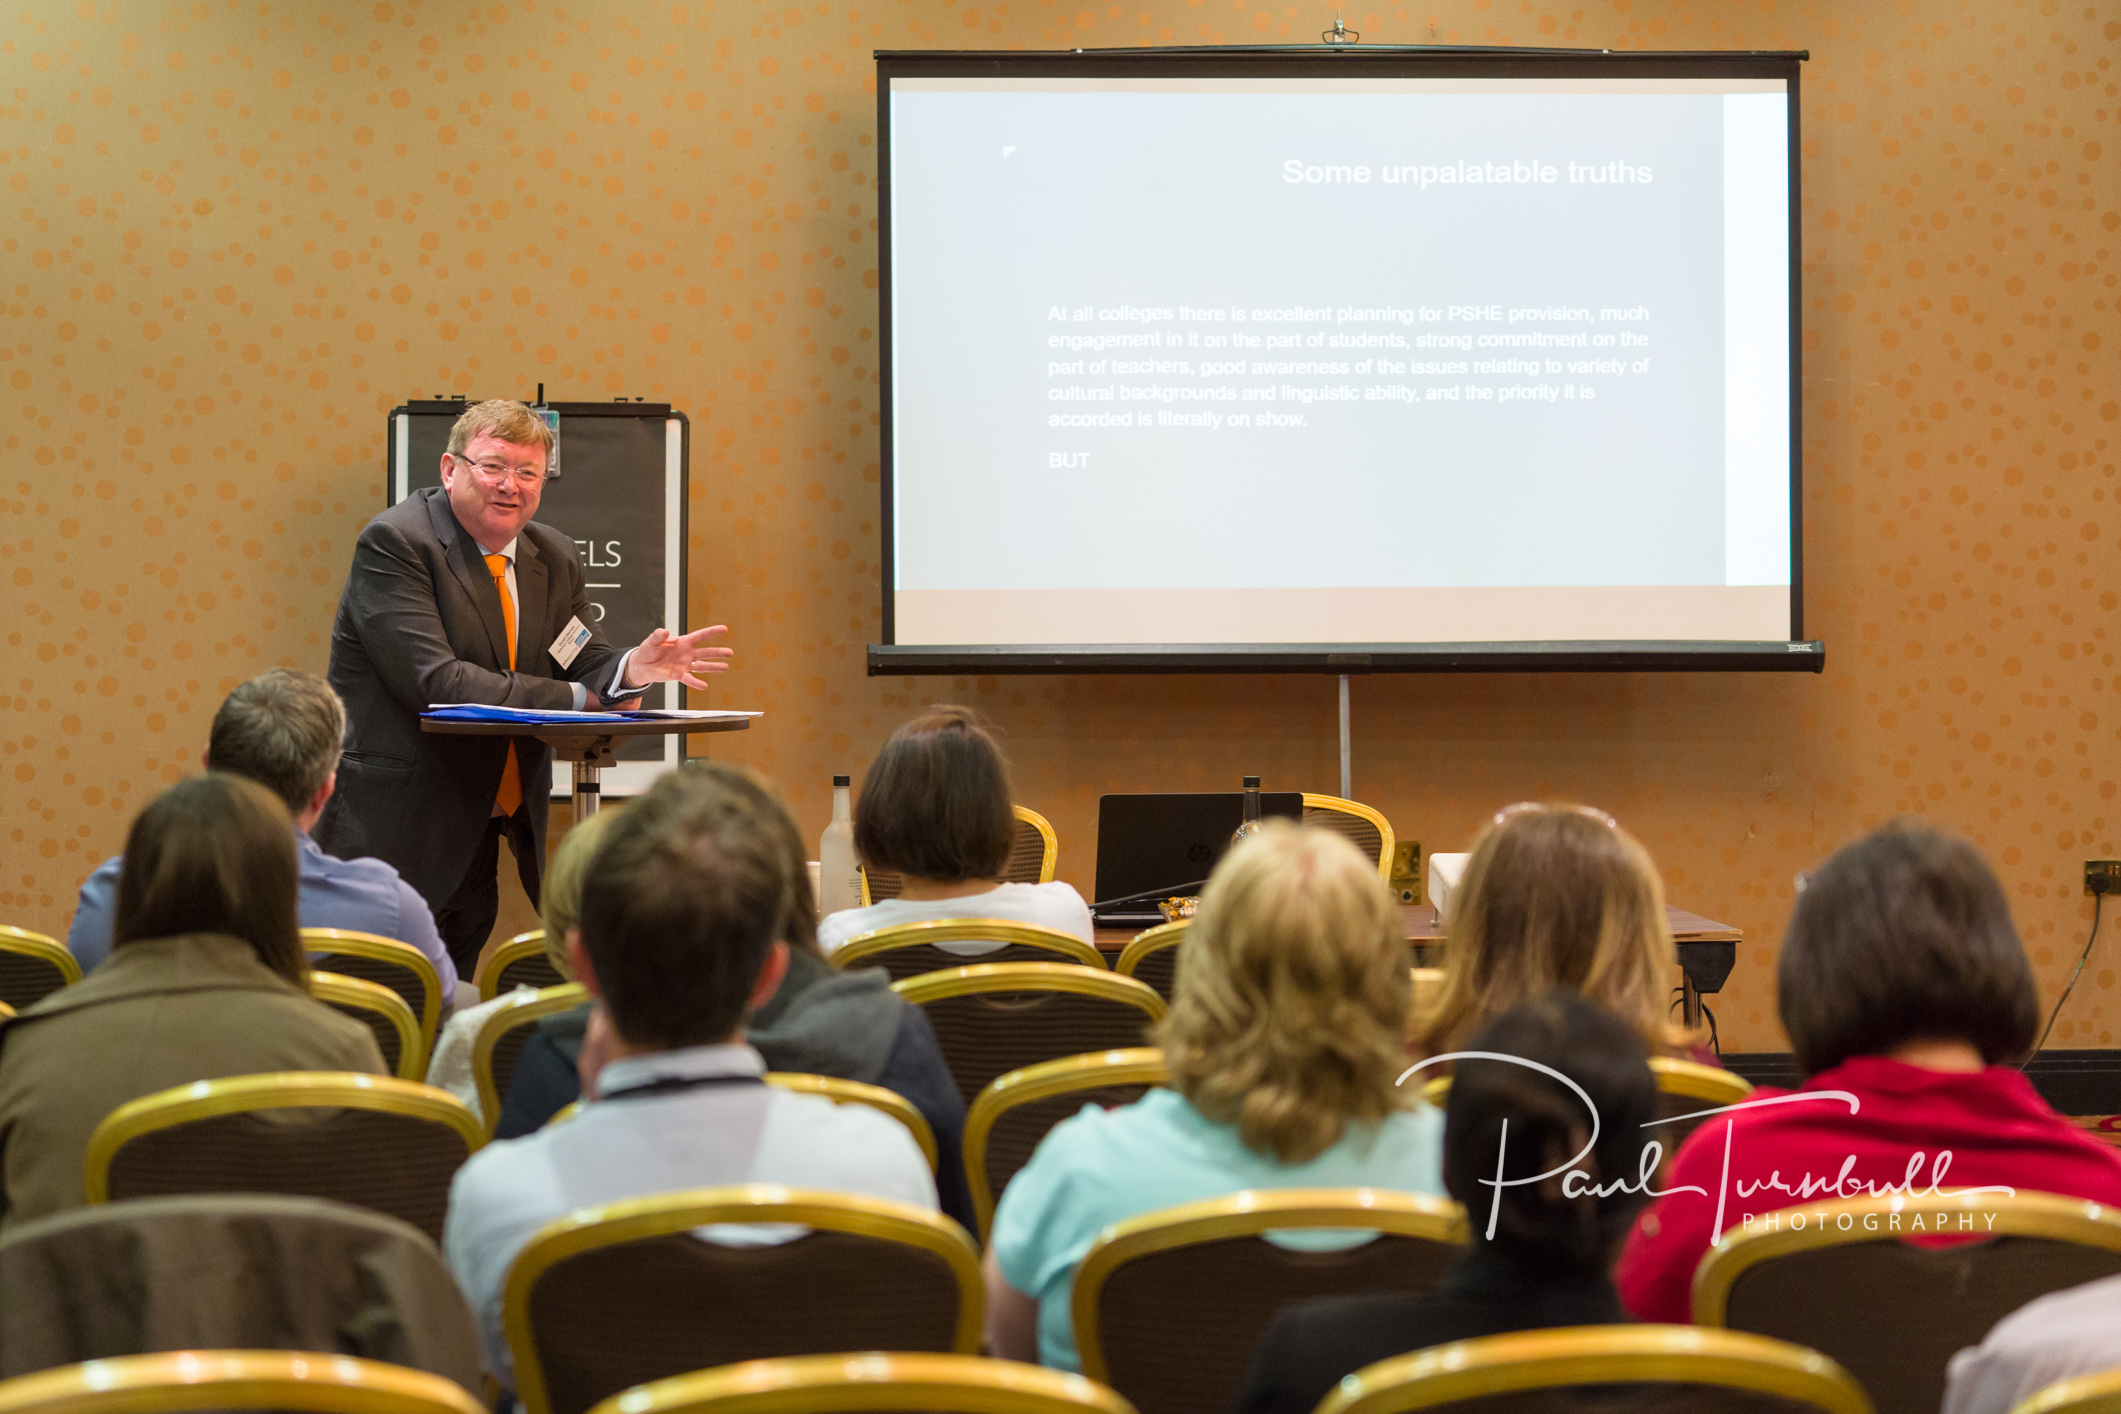 conference-event-photographer-queens-hotel-leeds-yorkshire-049.jpg